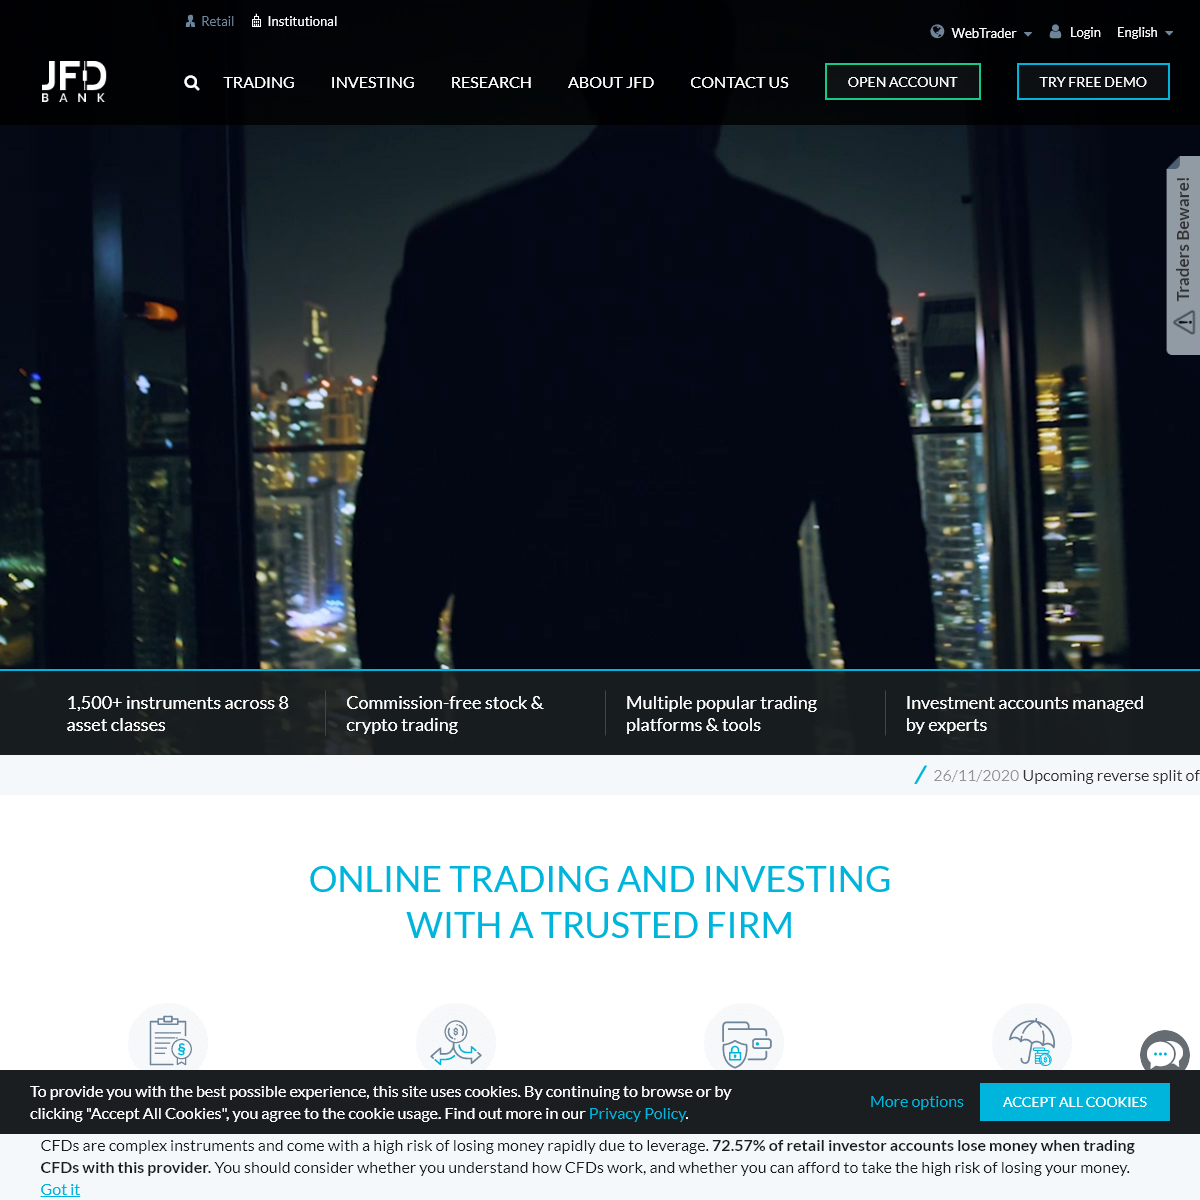 JFDBANK.com – One-Stop Multi-Asset Trading and Investing Experience